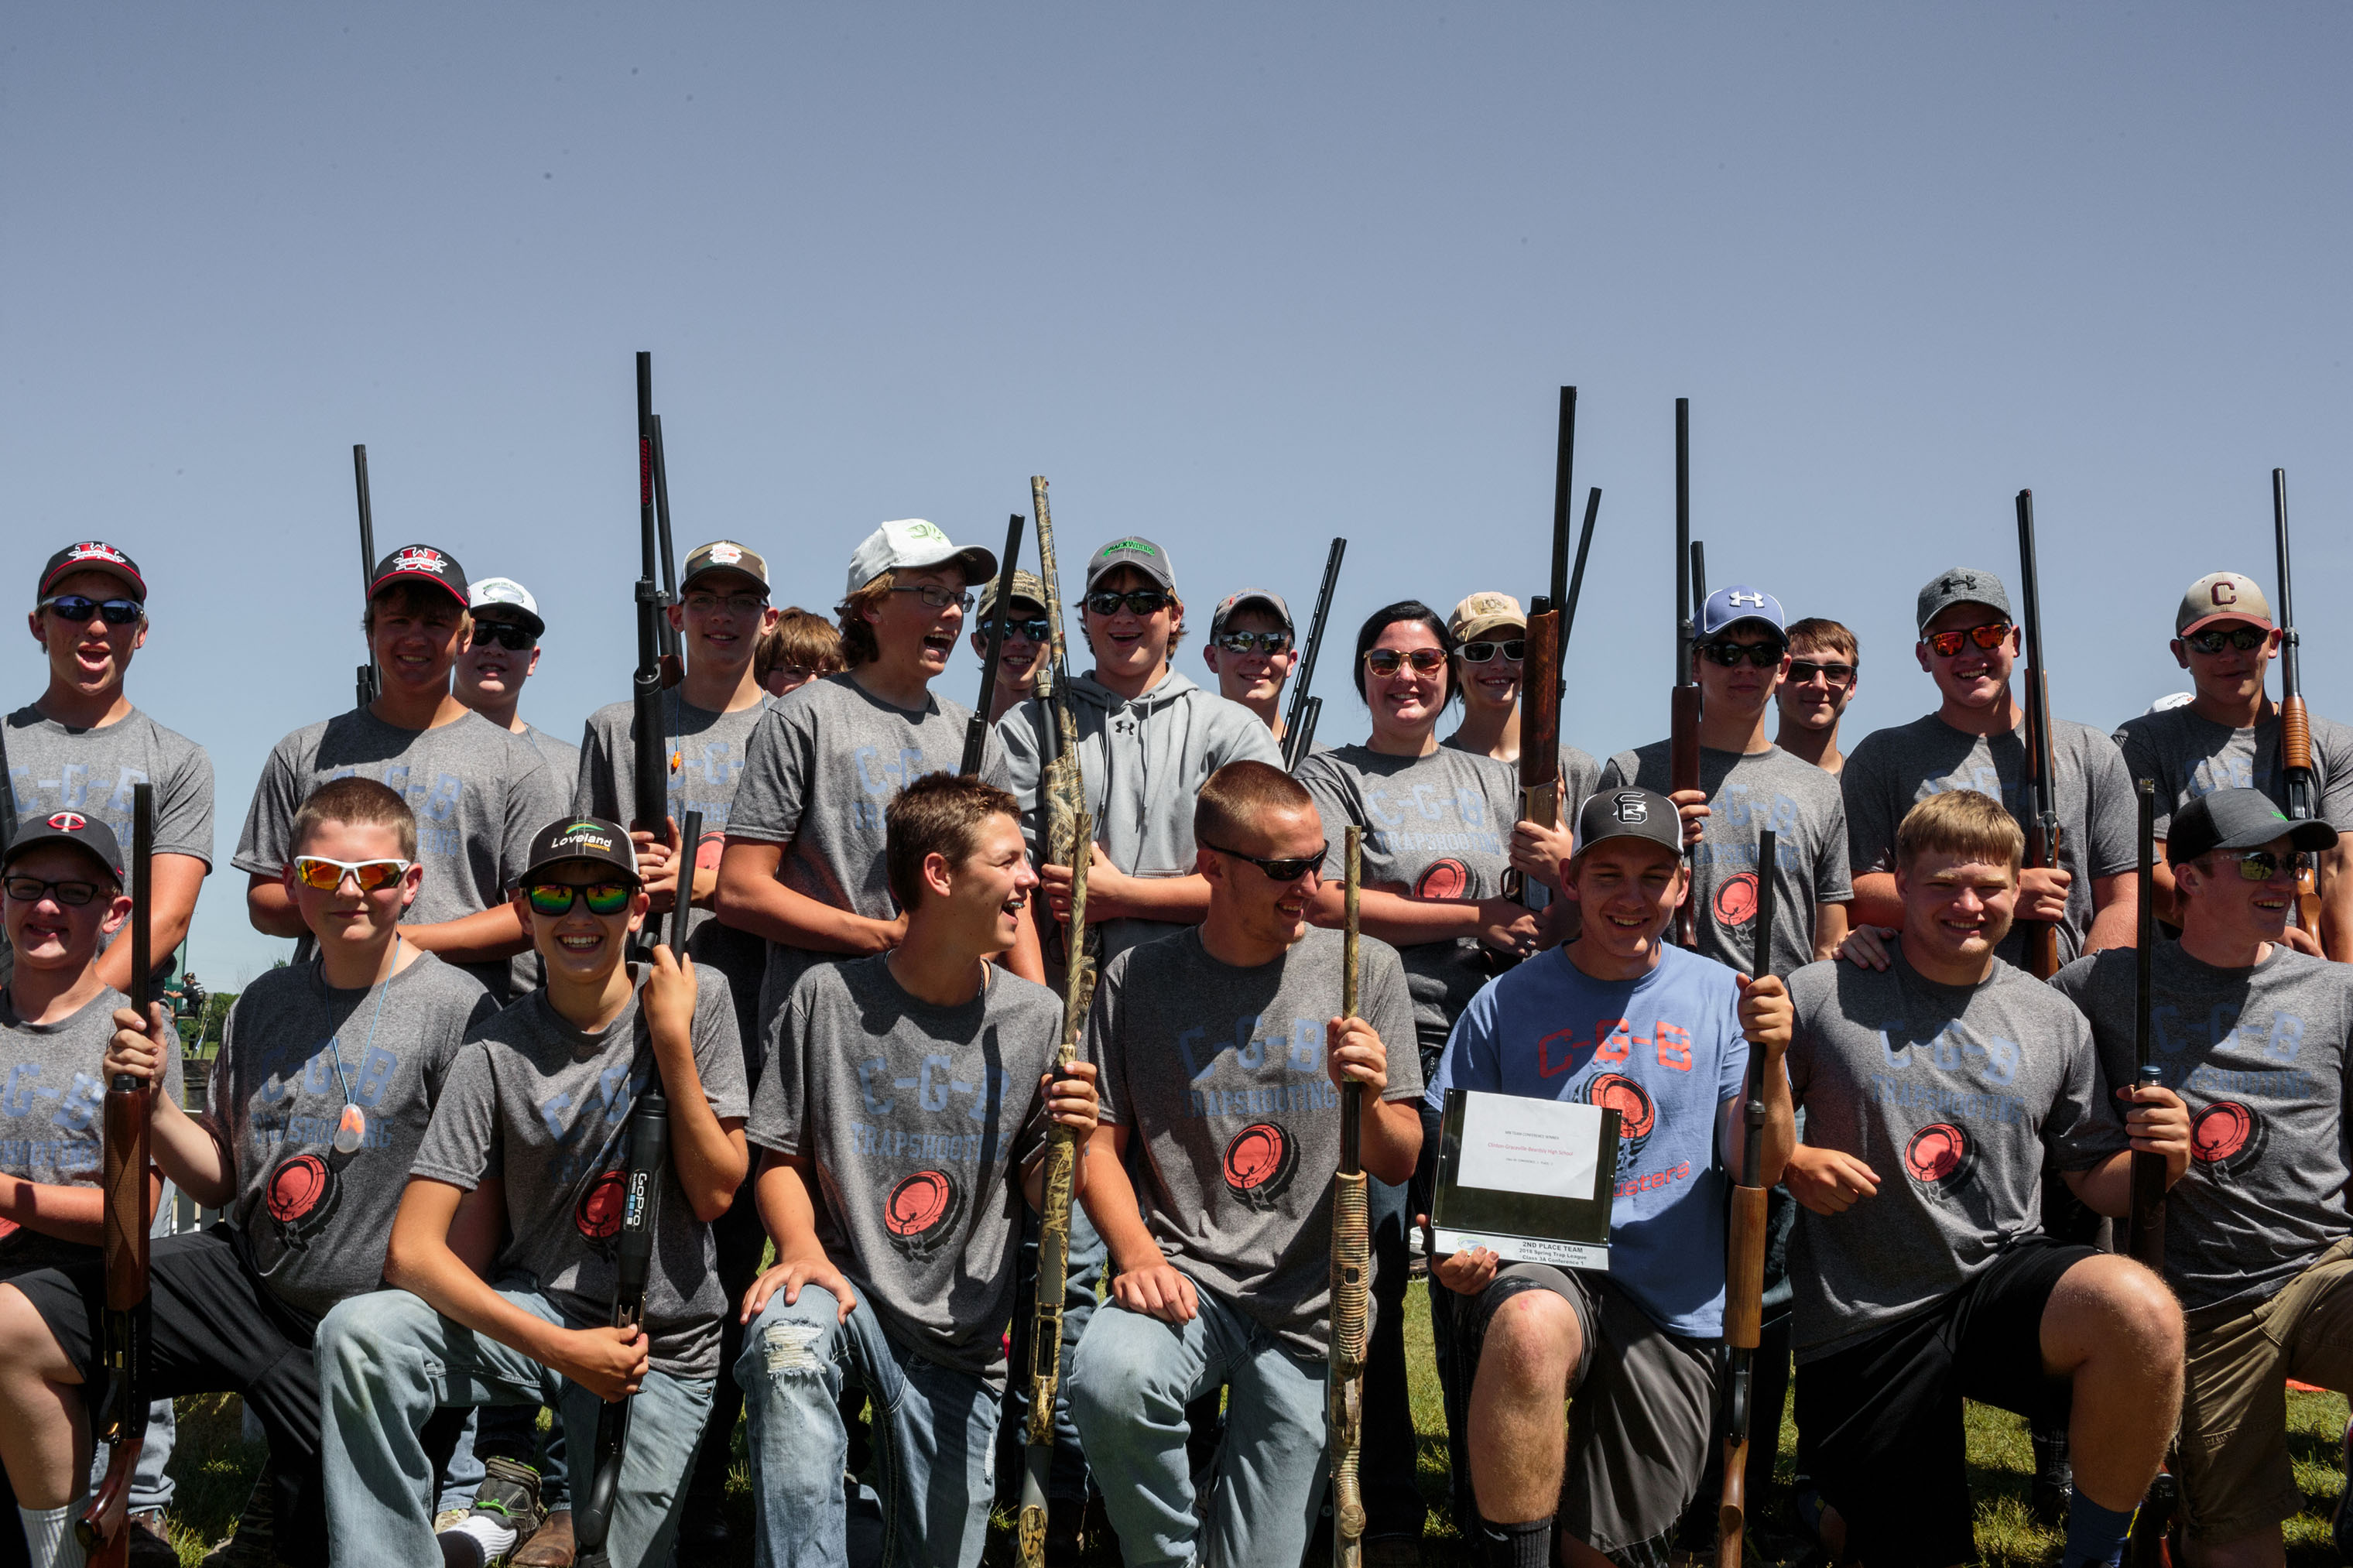 The C-G-B Trapshooting team lines up for a team photo.